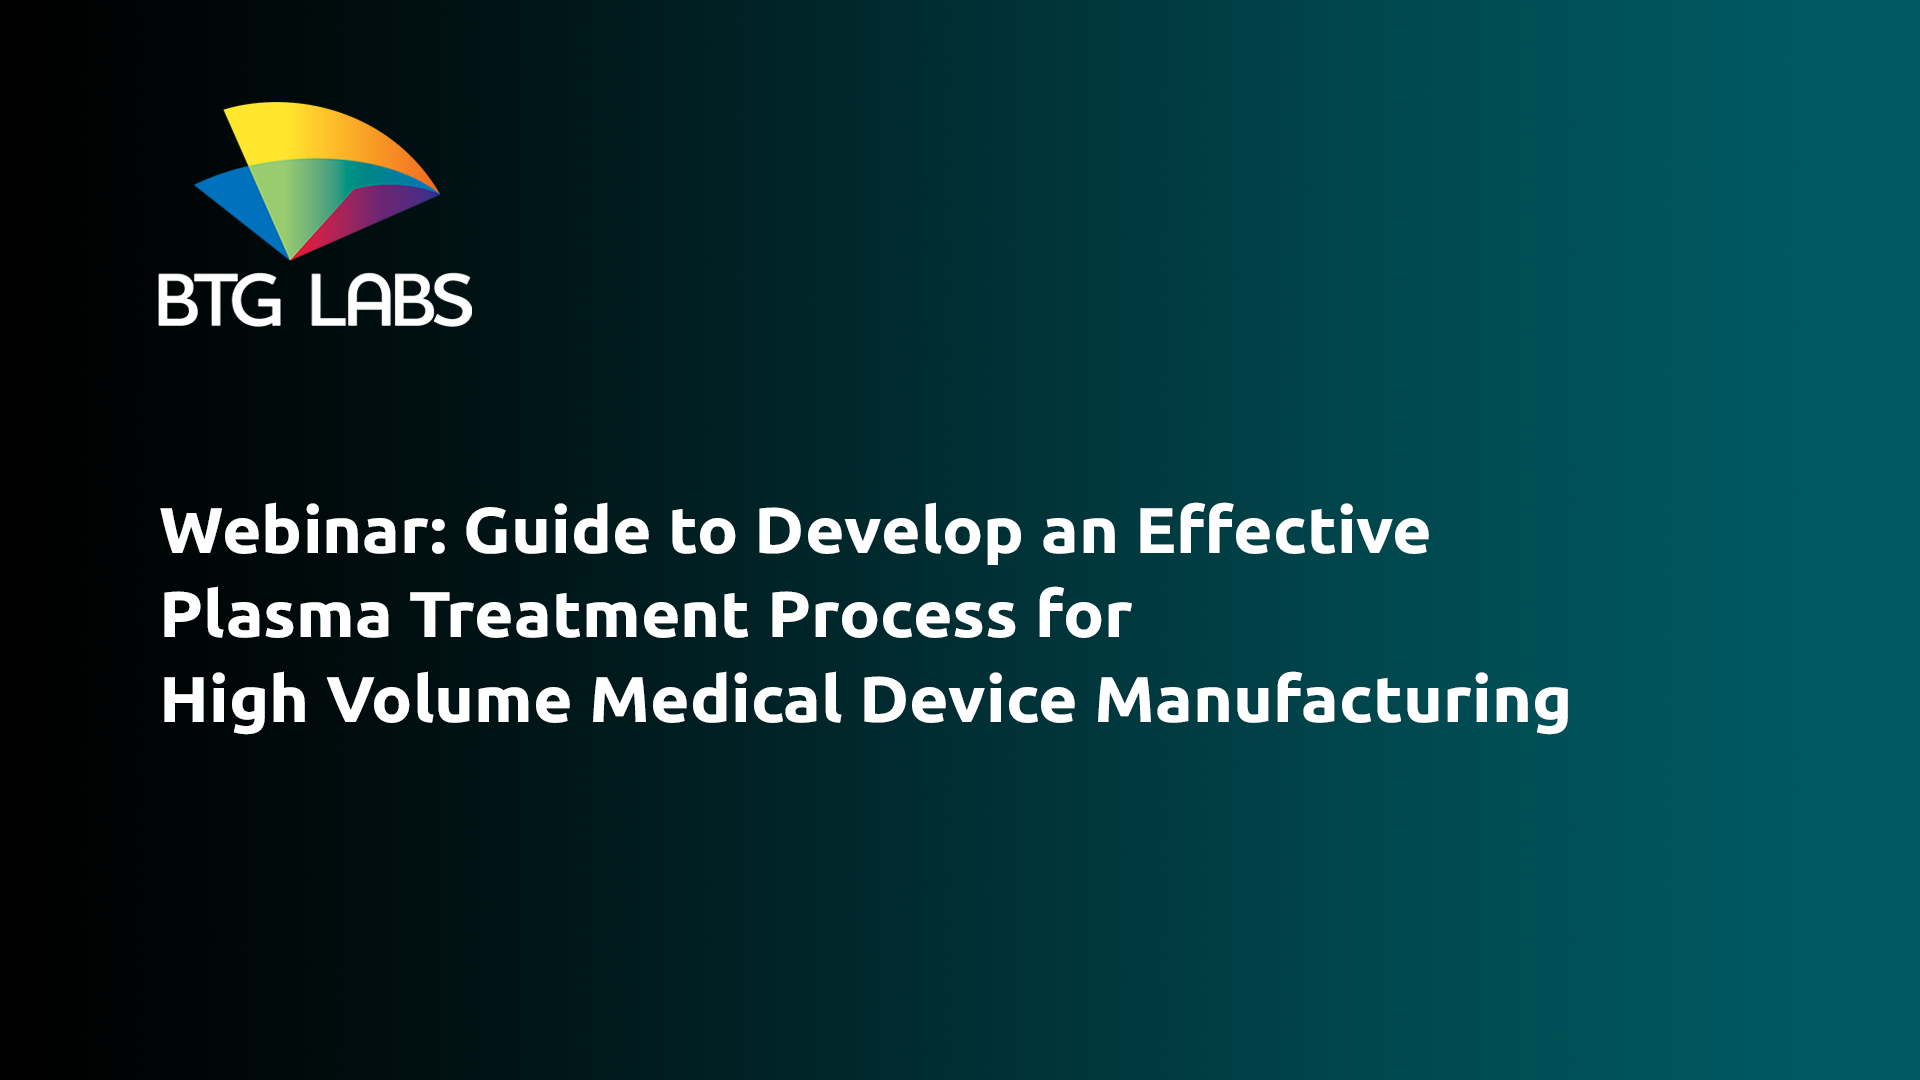 guide-to-develop-an-effective-plasma-treatment-process-for-high-volume-medical-device-manufacturing-